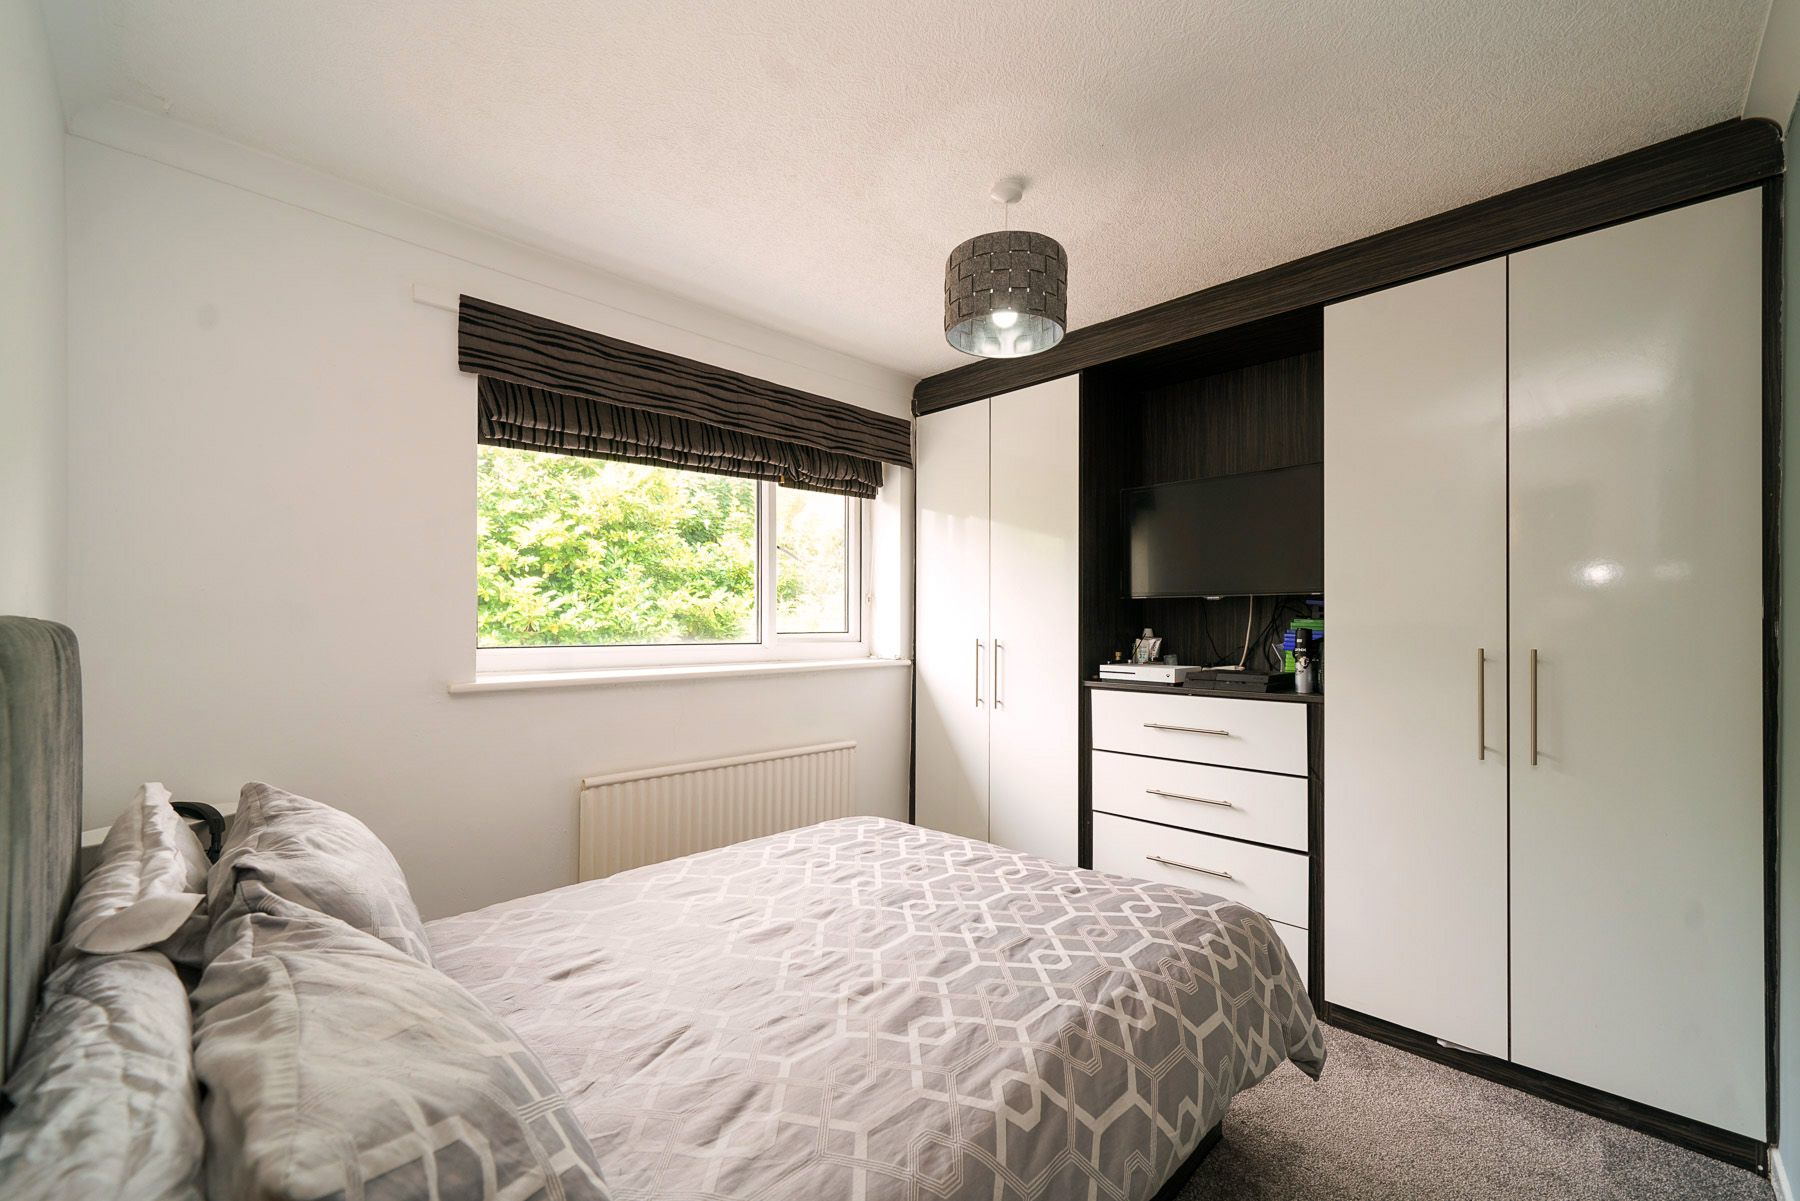 4 bedroom detached house SSTC in Bolton - Photograph 42